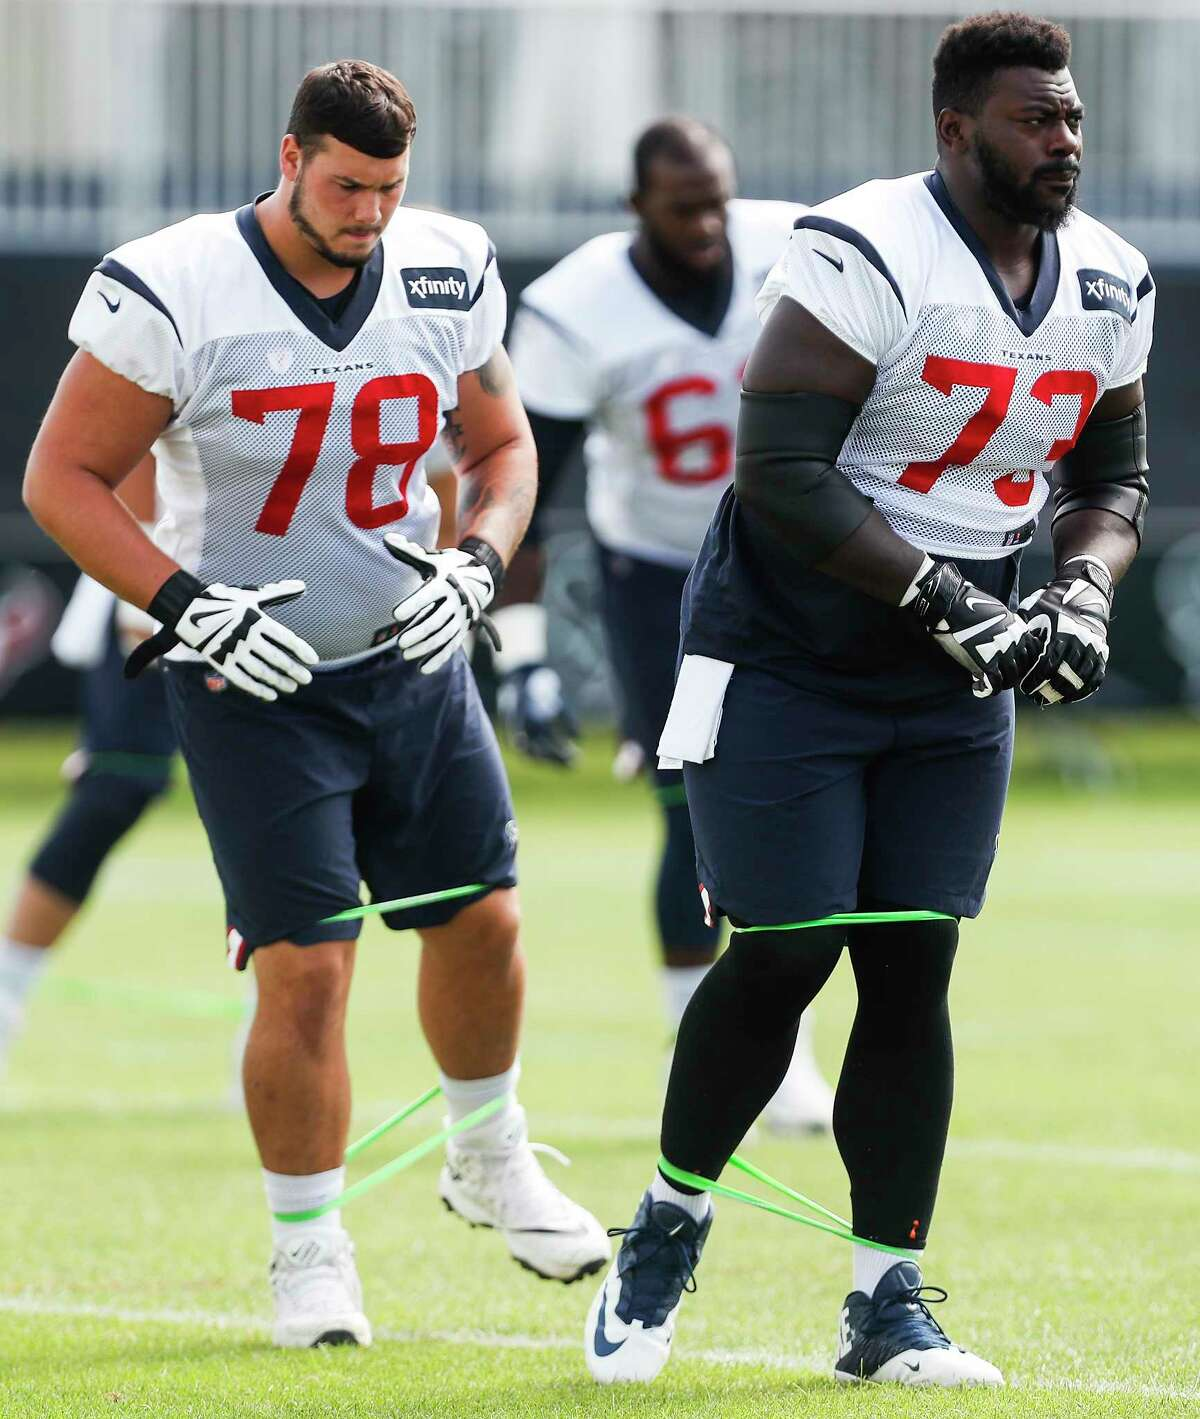 Houston Texans offensive guards Anthony Coyle (78) and Zach Fulton (73) warm up during training camp at the Greenbrier Sports Performance Center on Tuesday, Aug. 7, 2018, in White Sulphur Springs, W.Va.